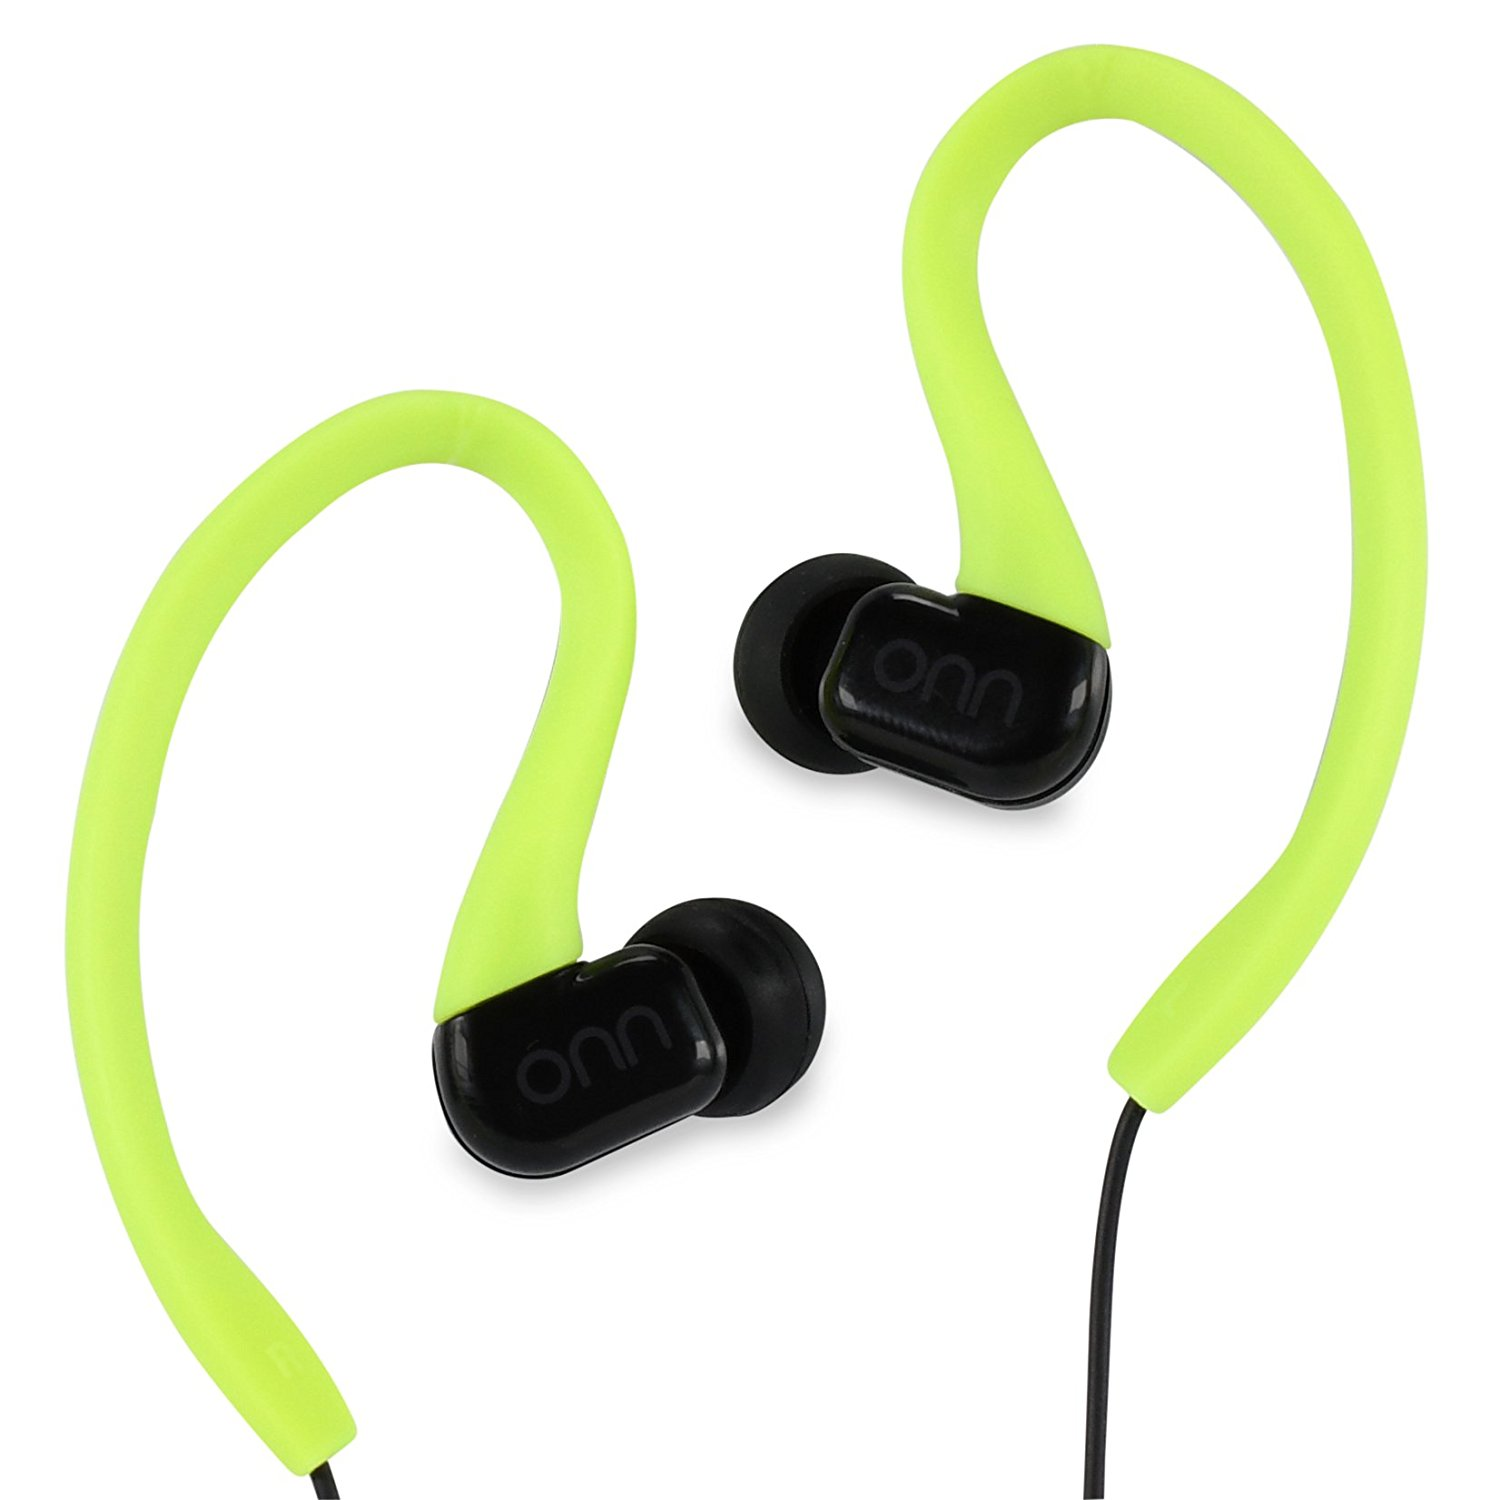 c3d30be7ceb Get Quotations · ONN Outdoor Activity Style Sports Soft Loop Hanger  Vertical In-Ear Clips Earbud Headphones Earbuds